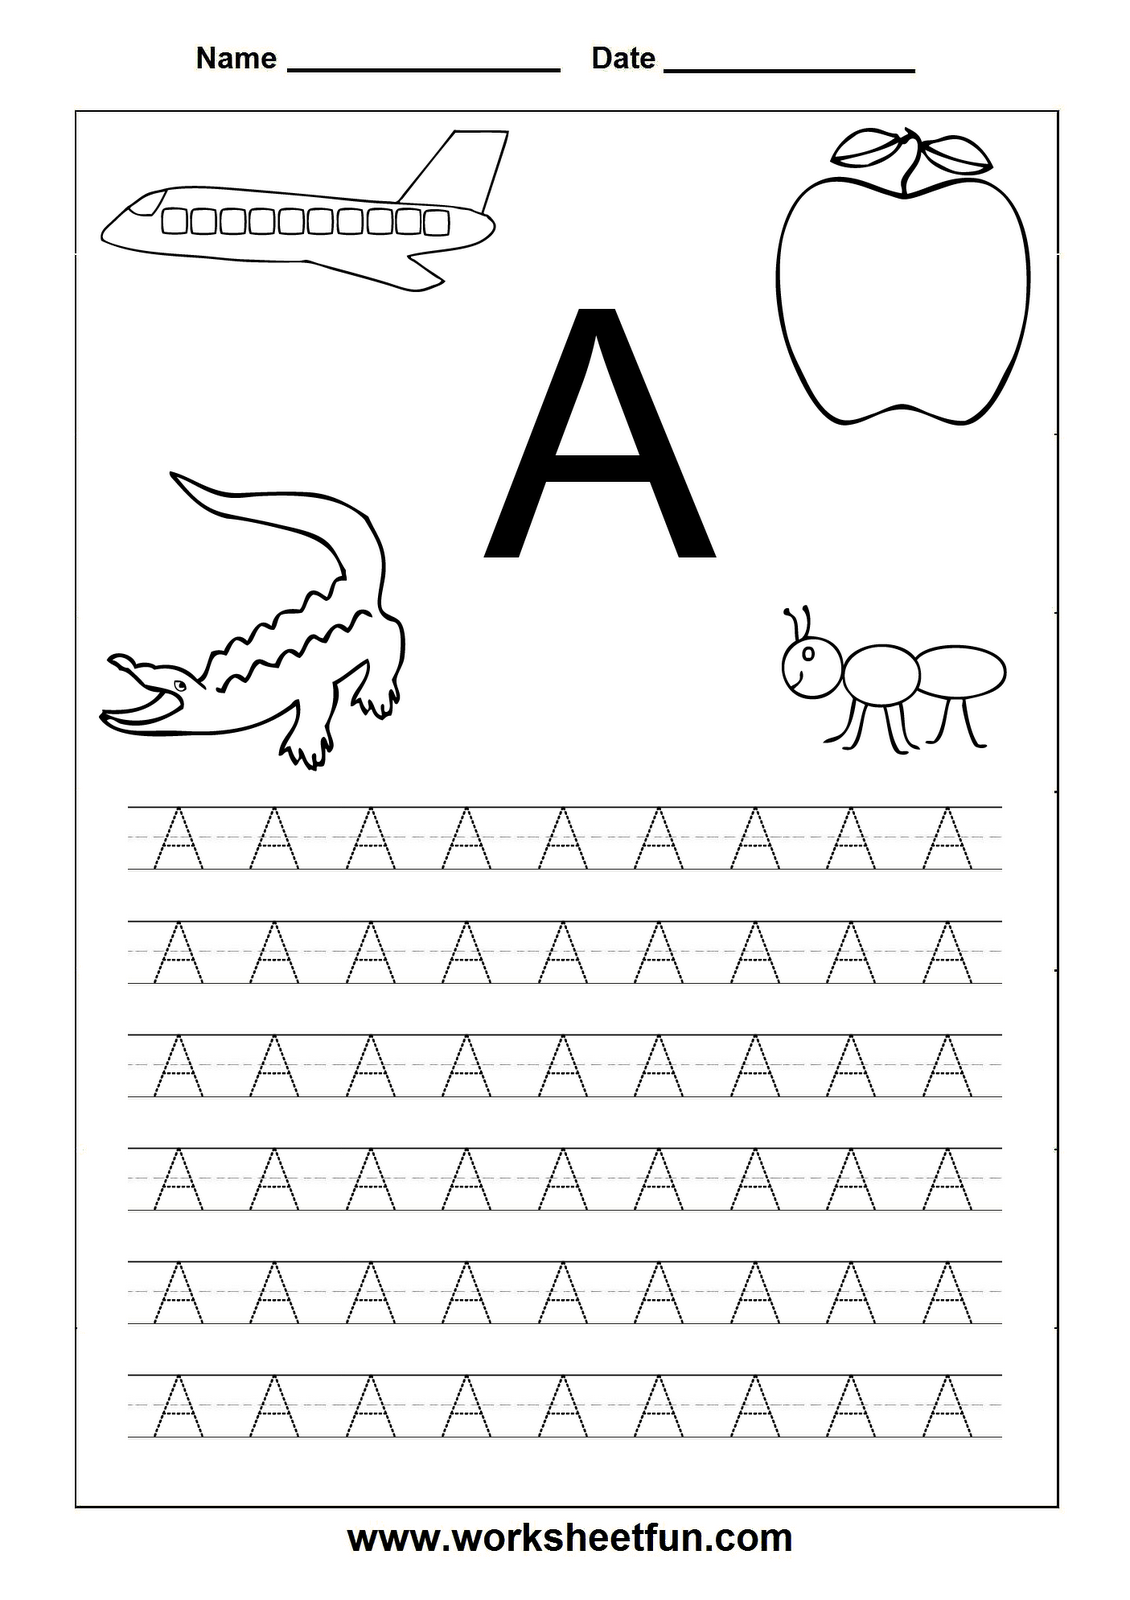 Printables Tracing The Alphabet Worksheets For Kindergarten 1000 images about letters on pinterest handwriting worksheets letter tracing and alphabet